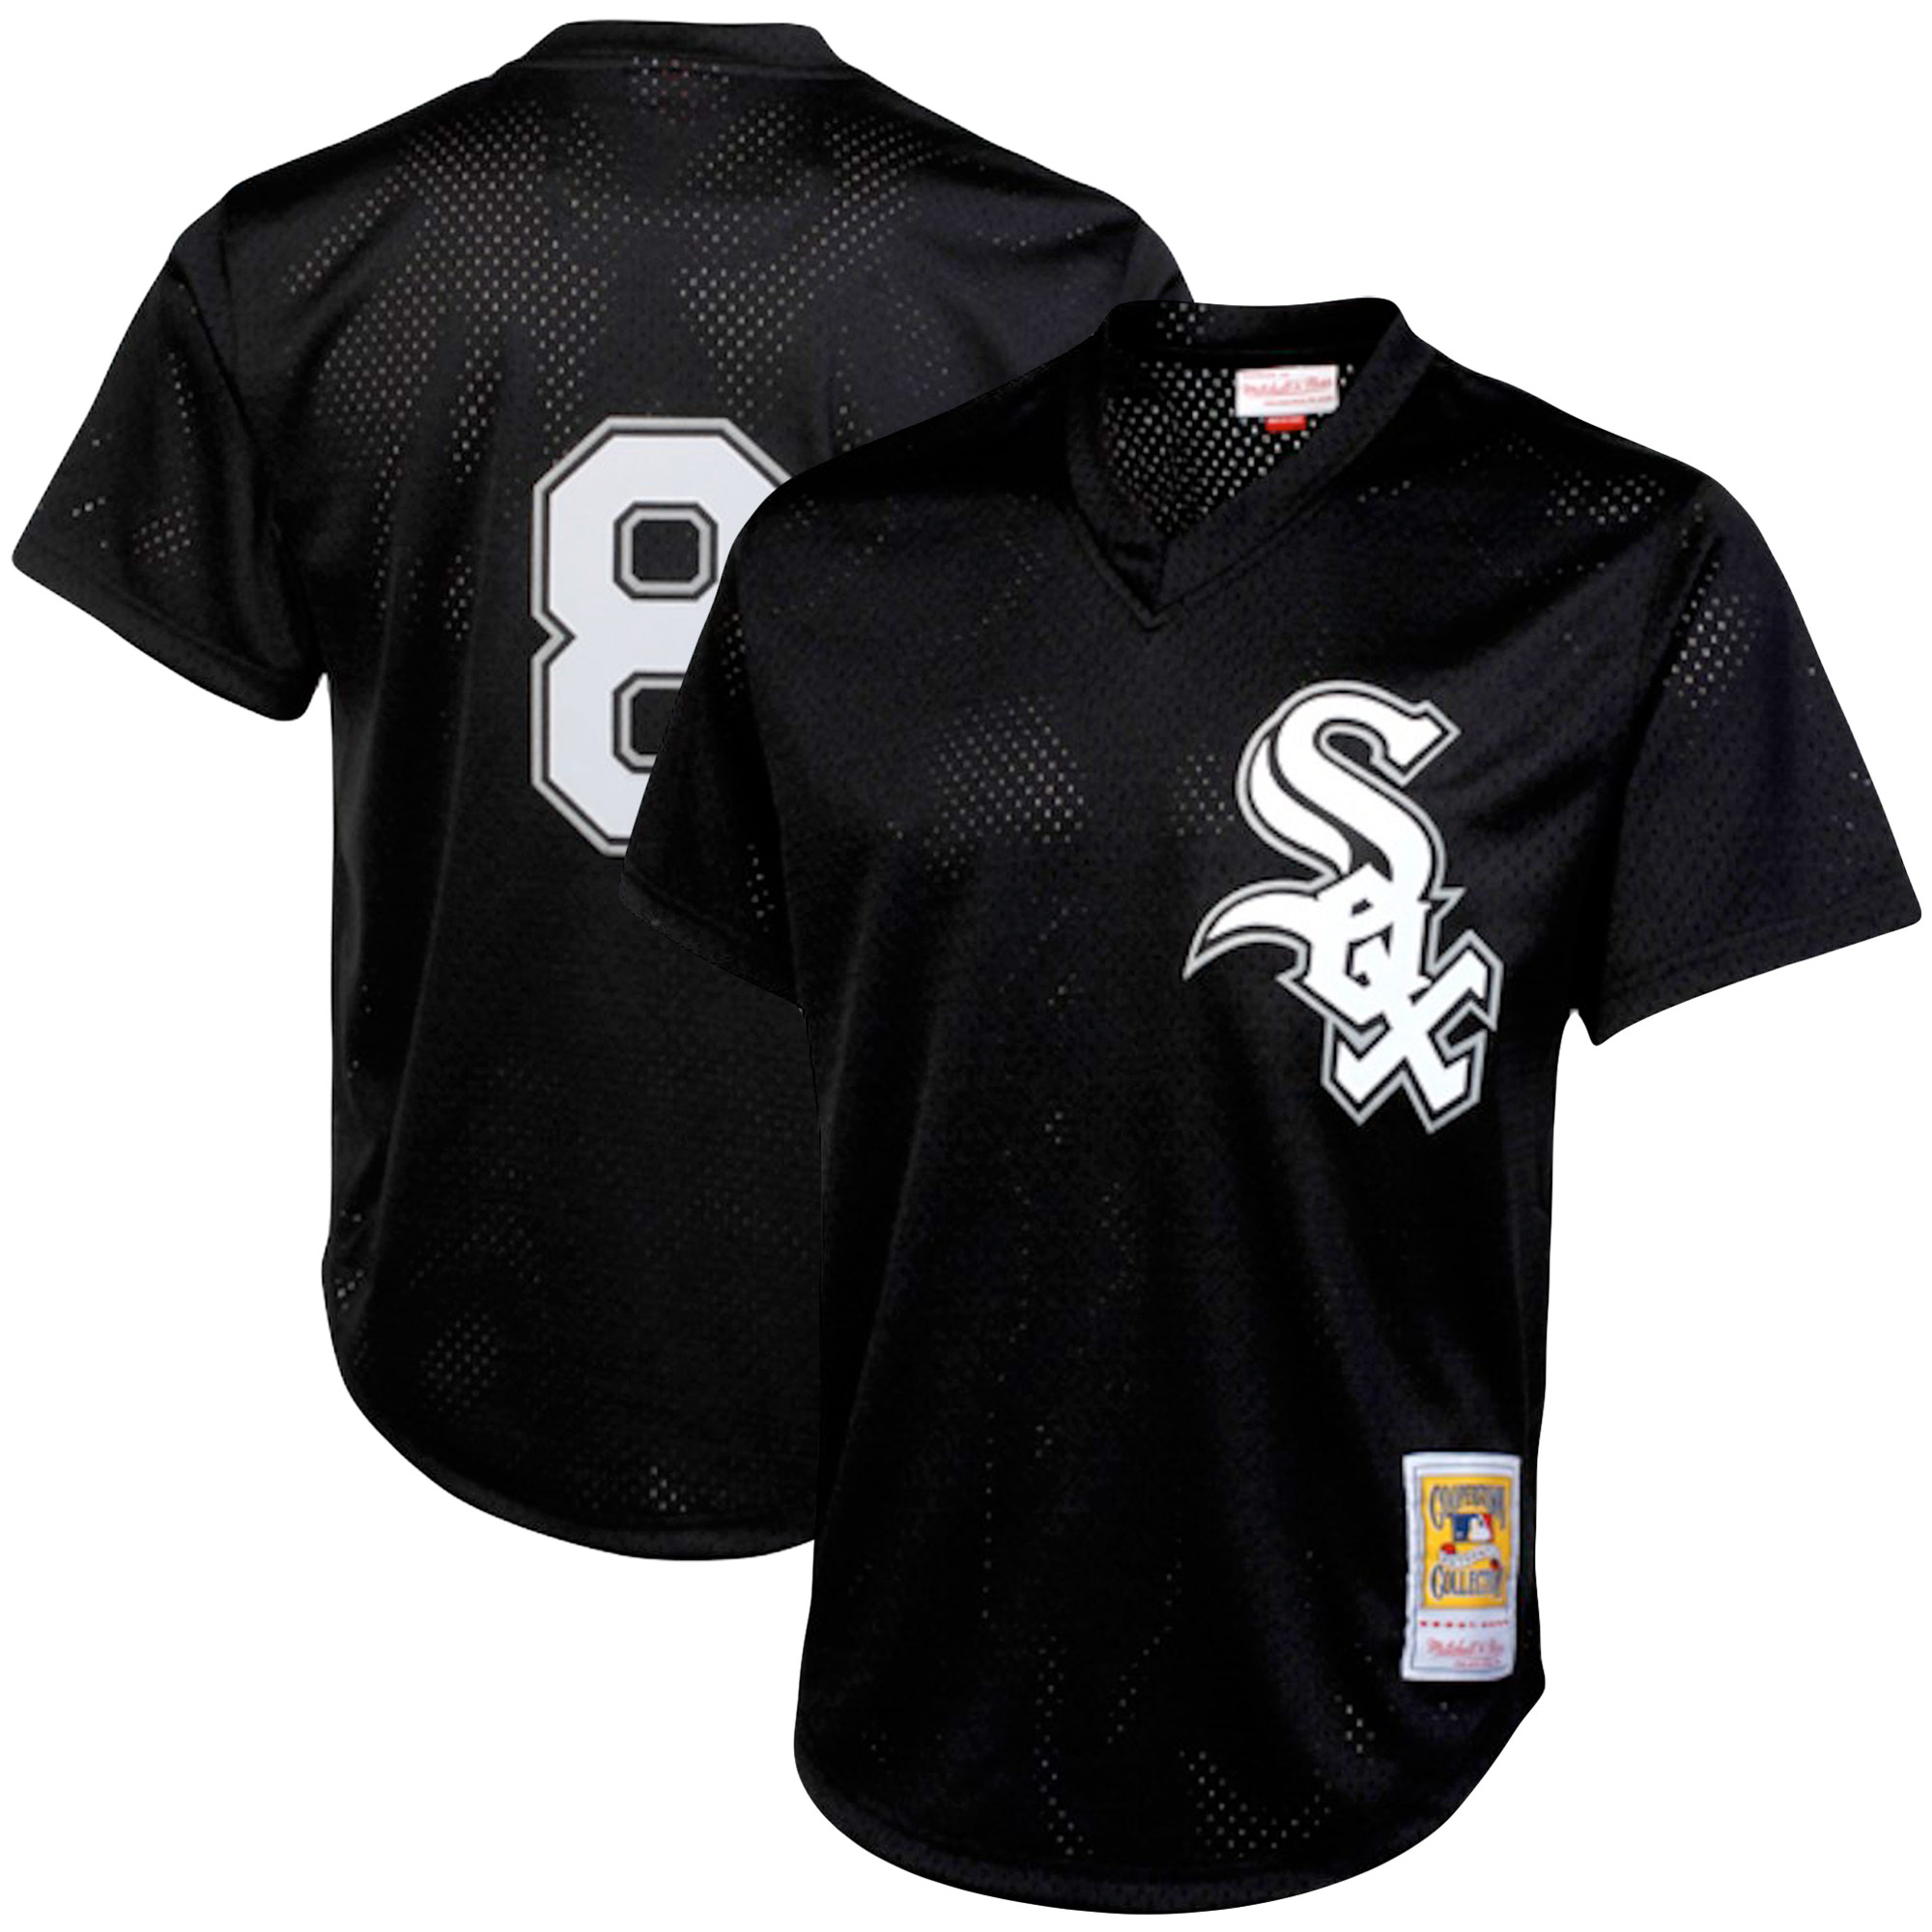 Bo Jackson Chicago White Sox Mitchell & Ness Cooperstown Collection Mesh Batting Practice Jersey - Black